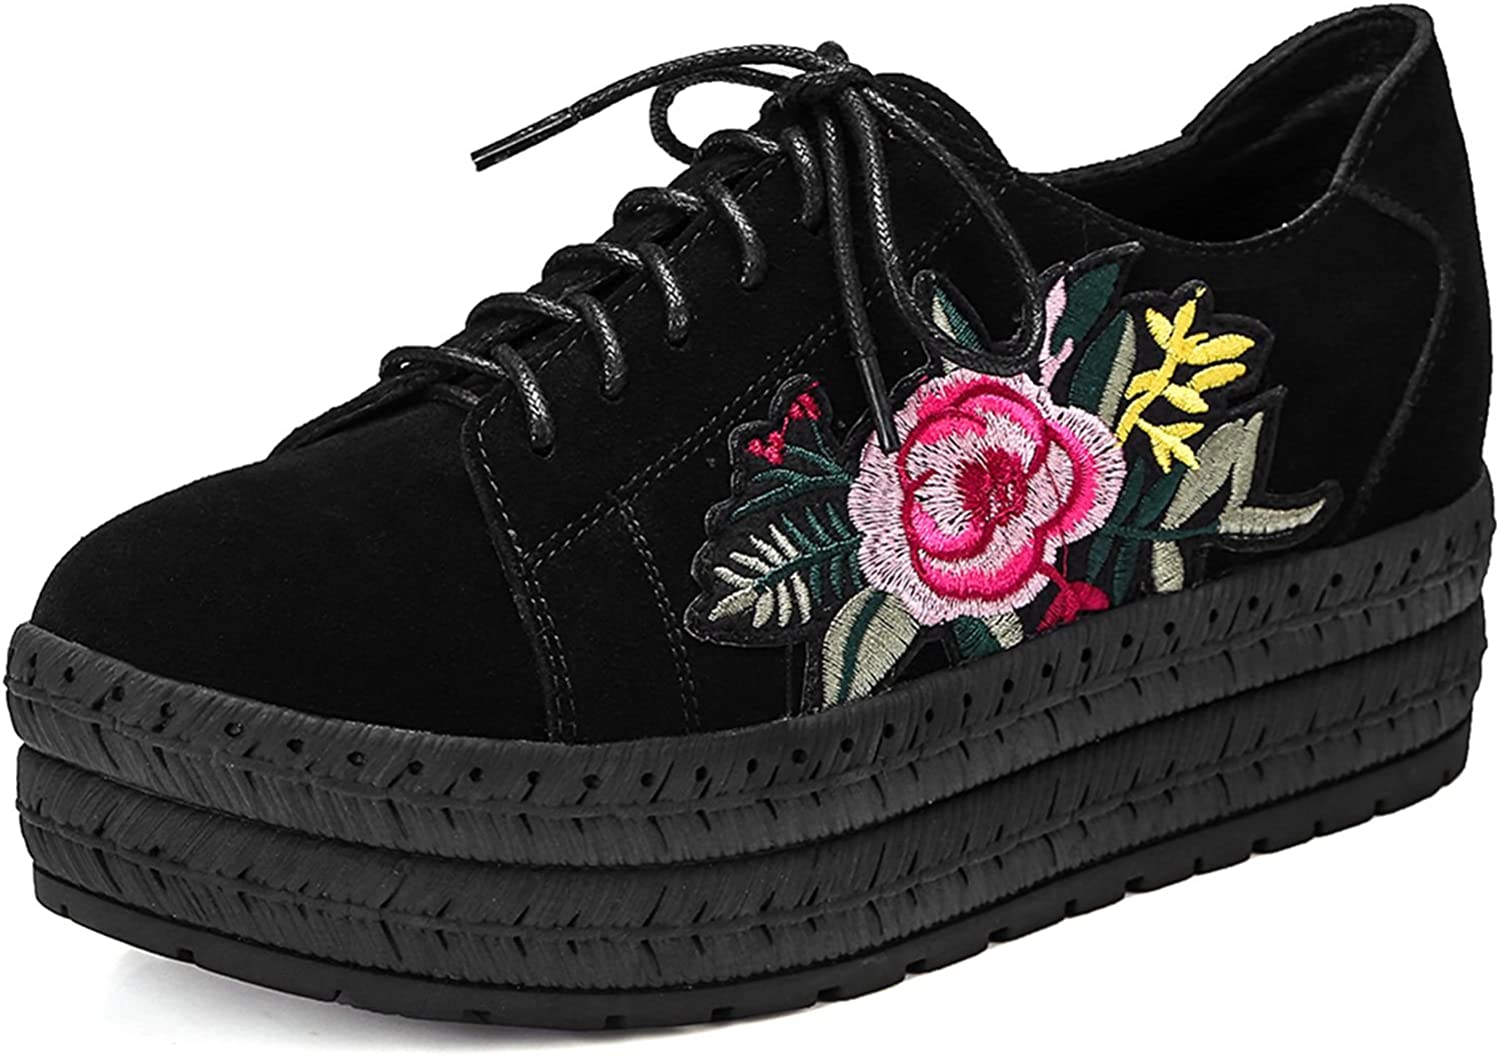 VIMISAOI Women's Embroidered Lace Up Casual Fashion Sneakers Platform Hidden Wedges shoes